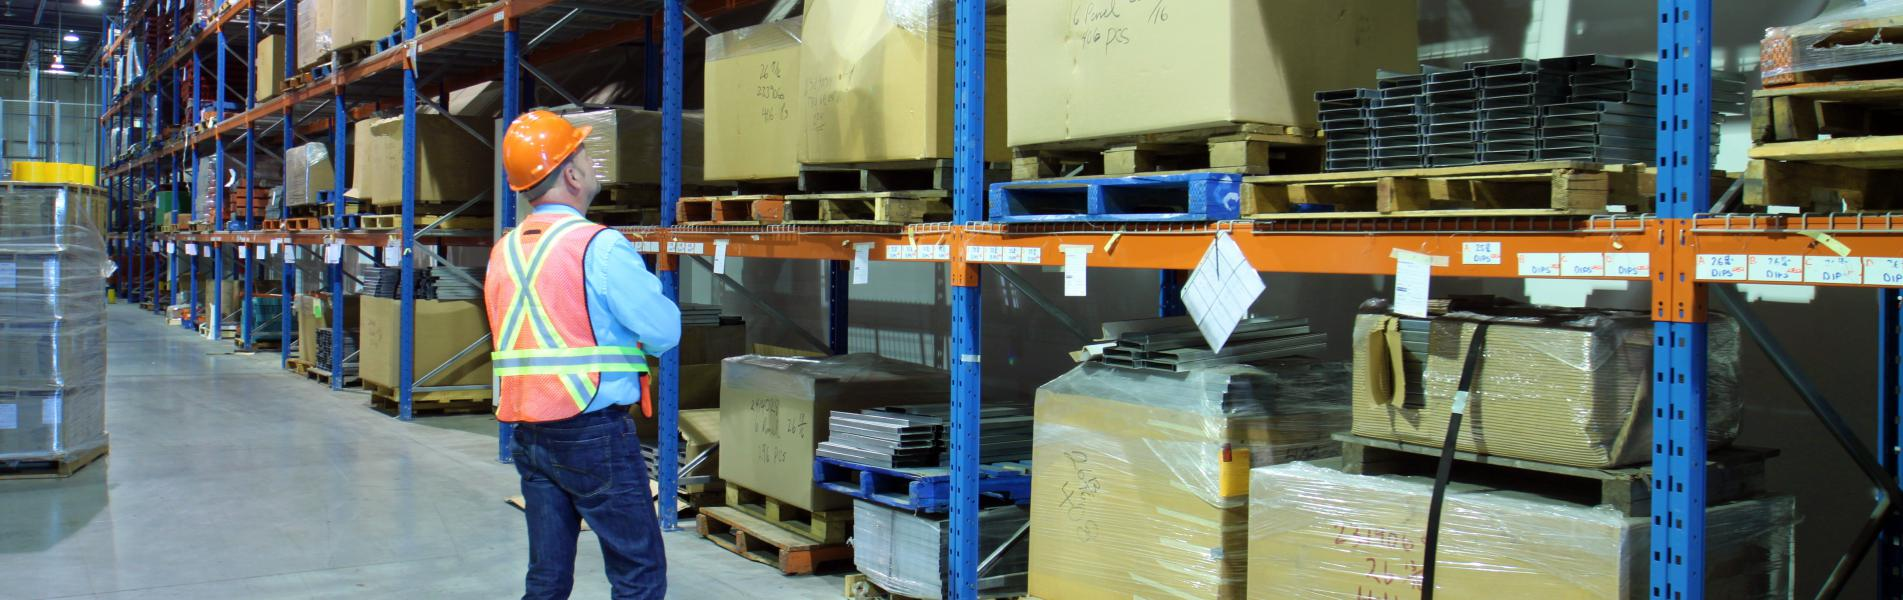 warehouse racking inspections